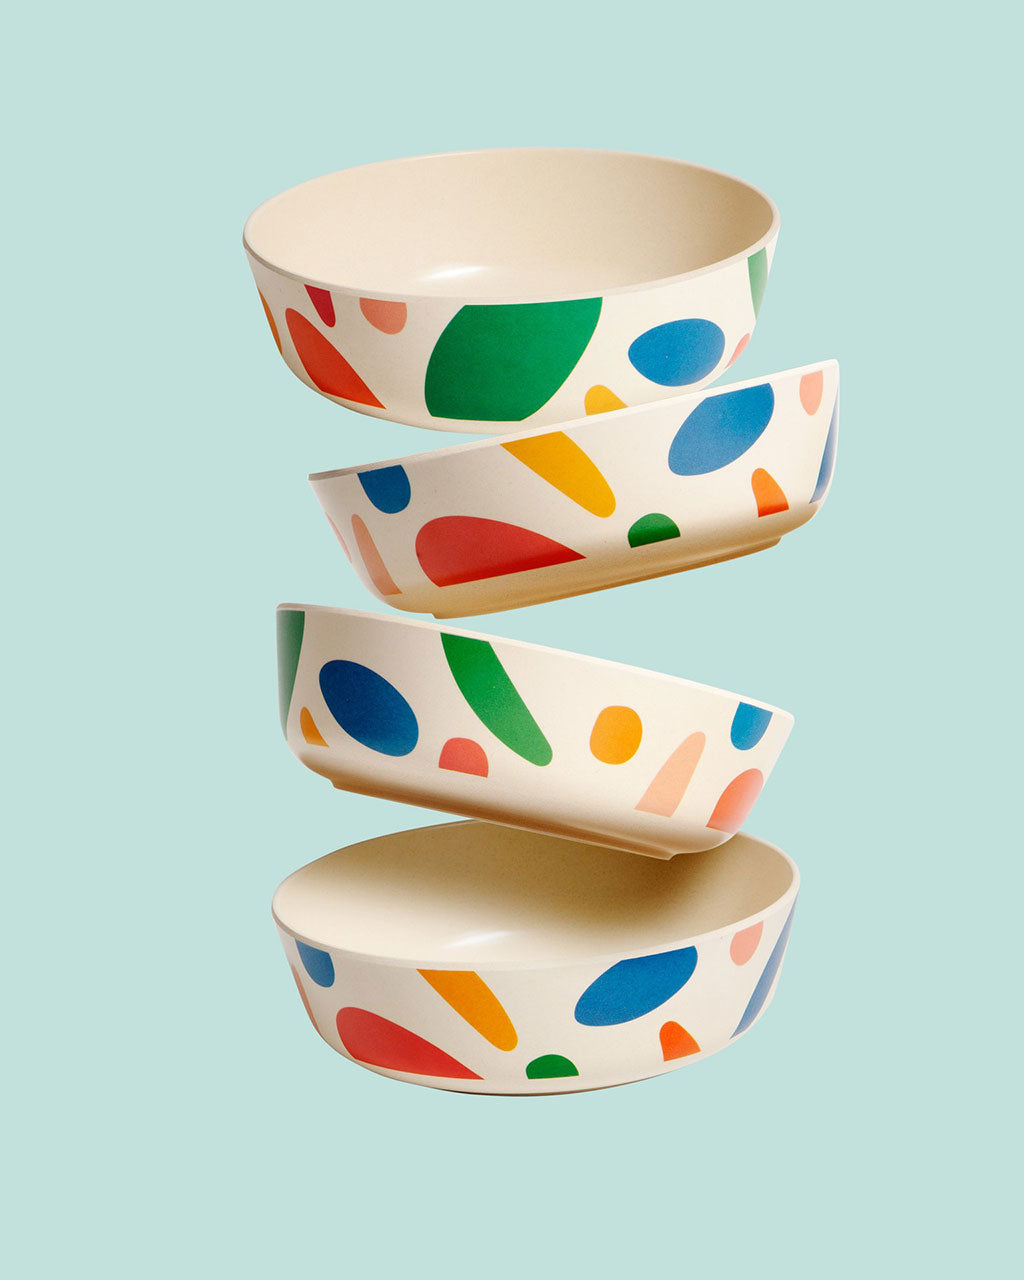 set of 4 bamboo bowls shown in blots design